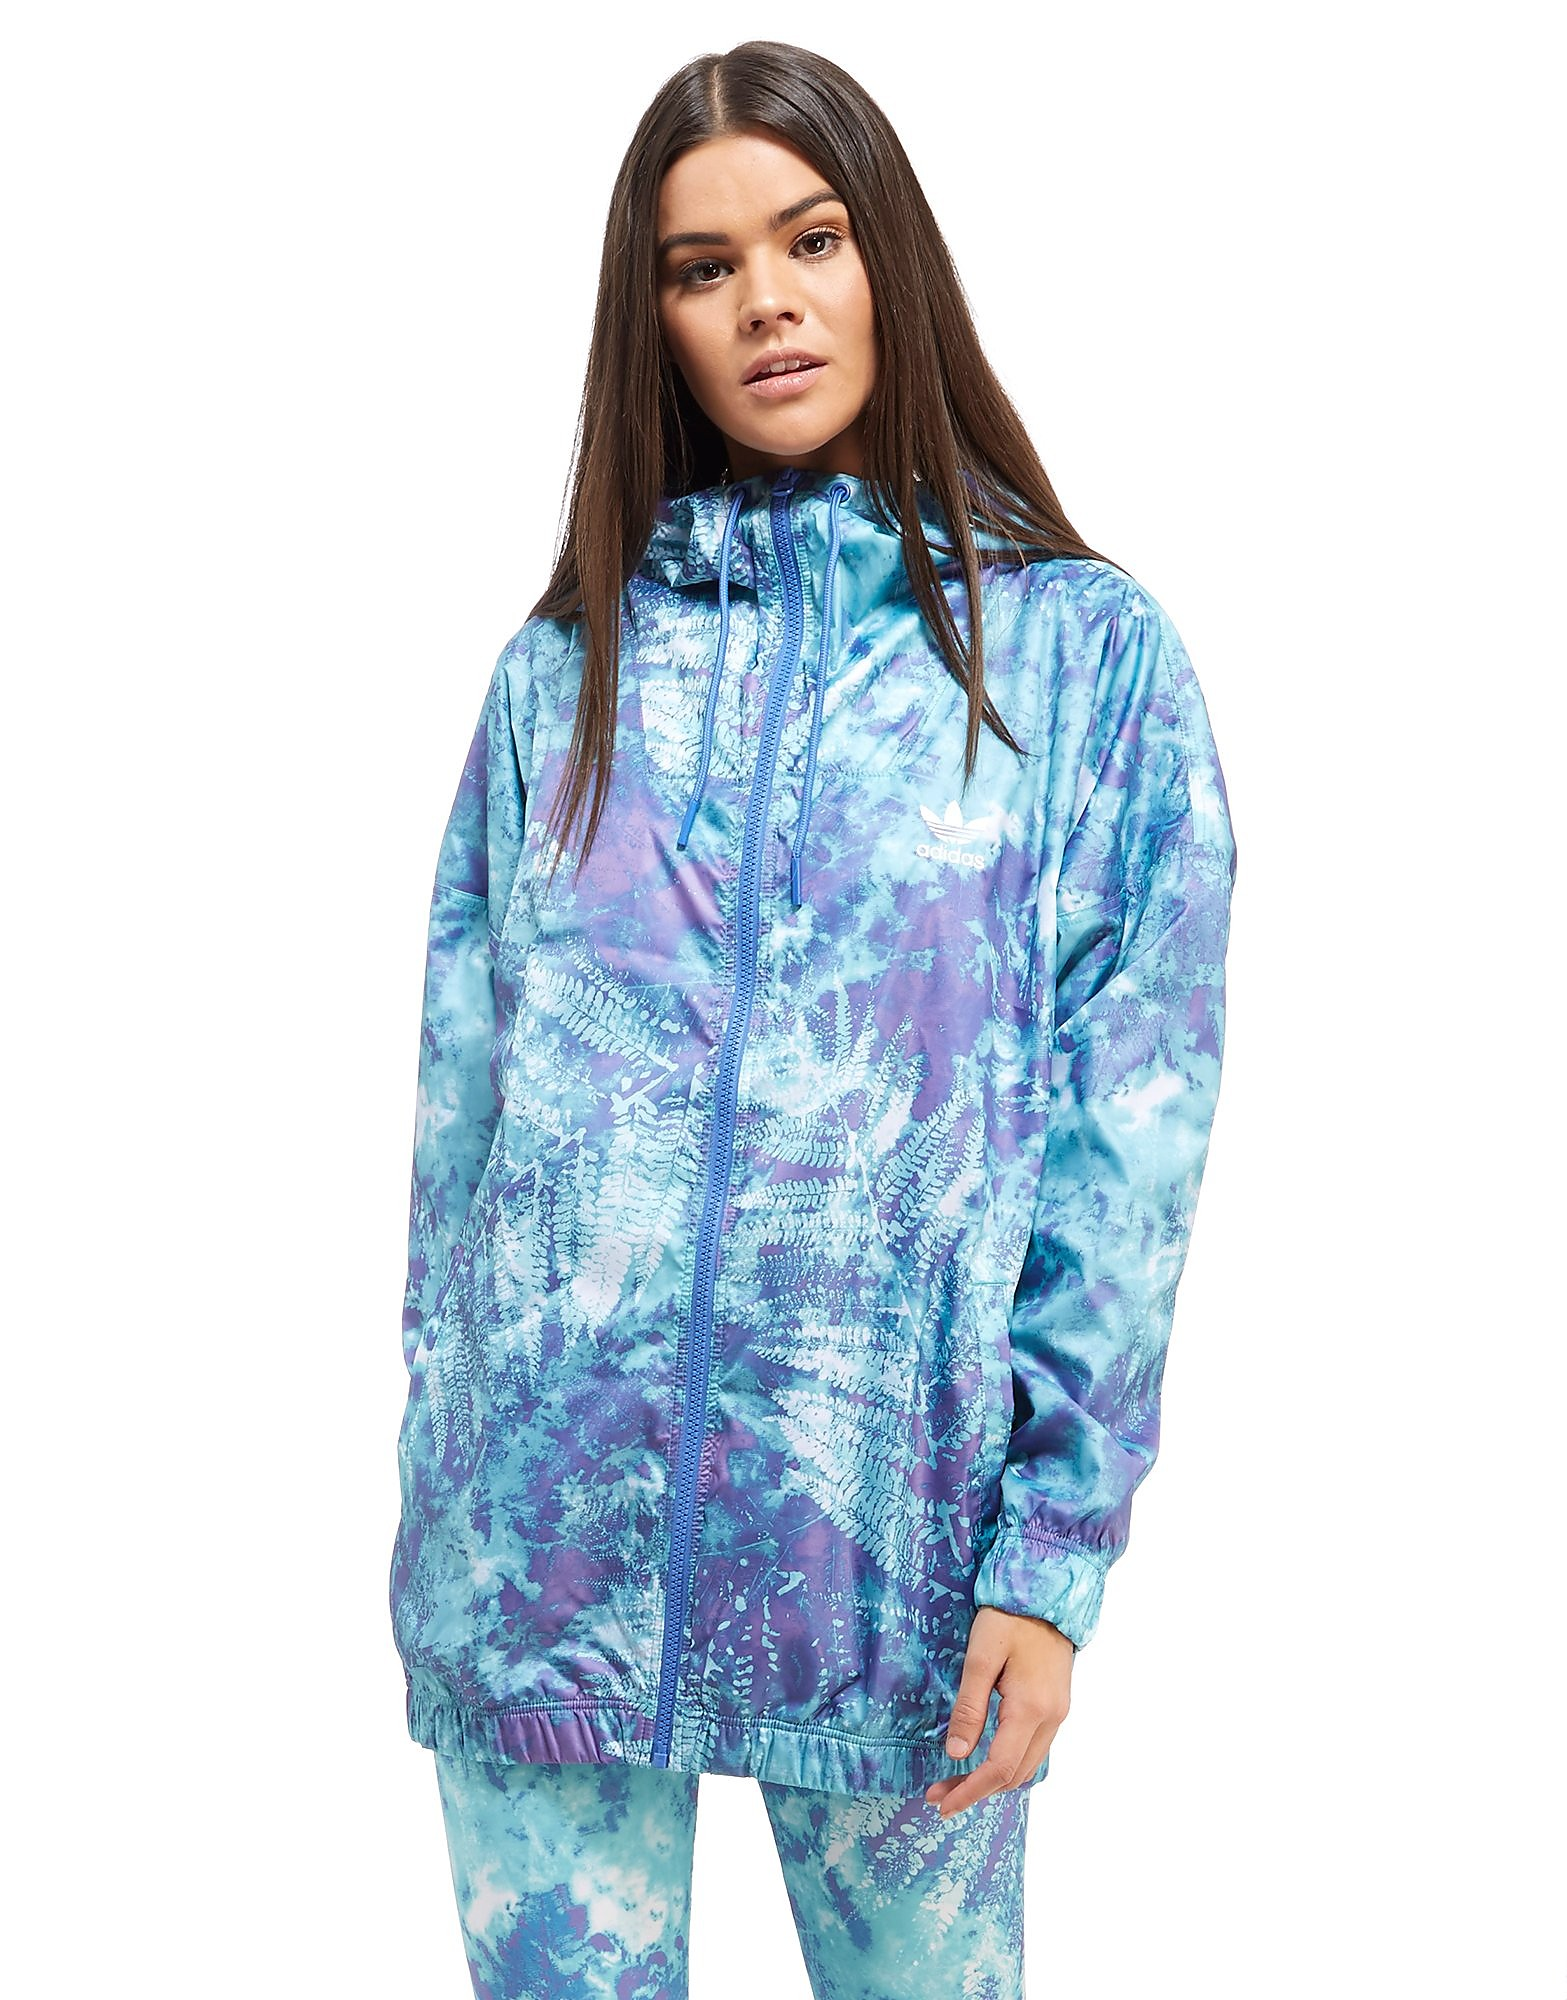 adidas Originals Ocean Elements Windbreaker Jacket